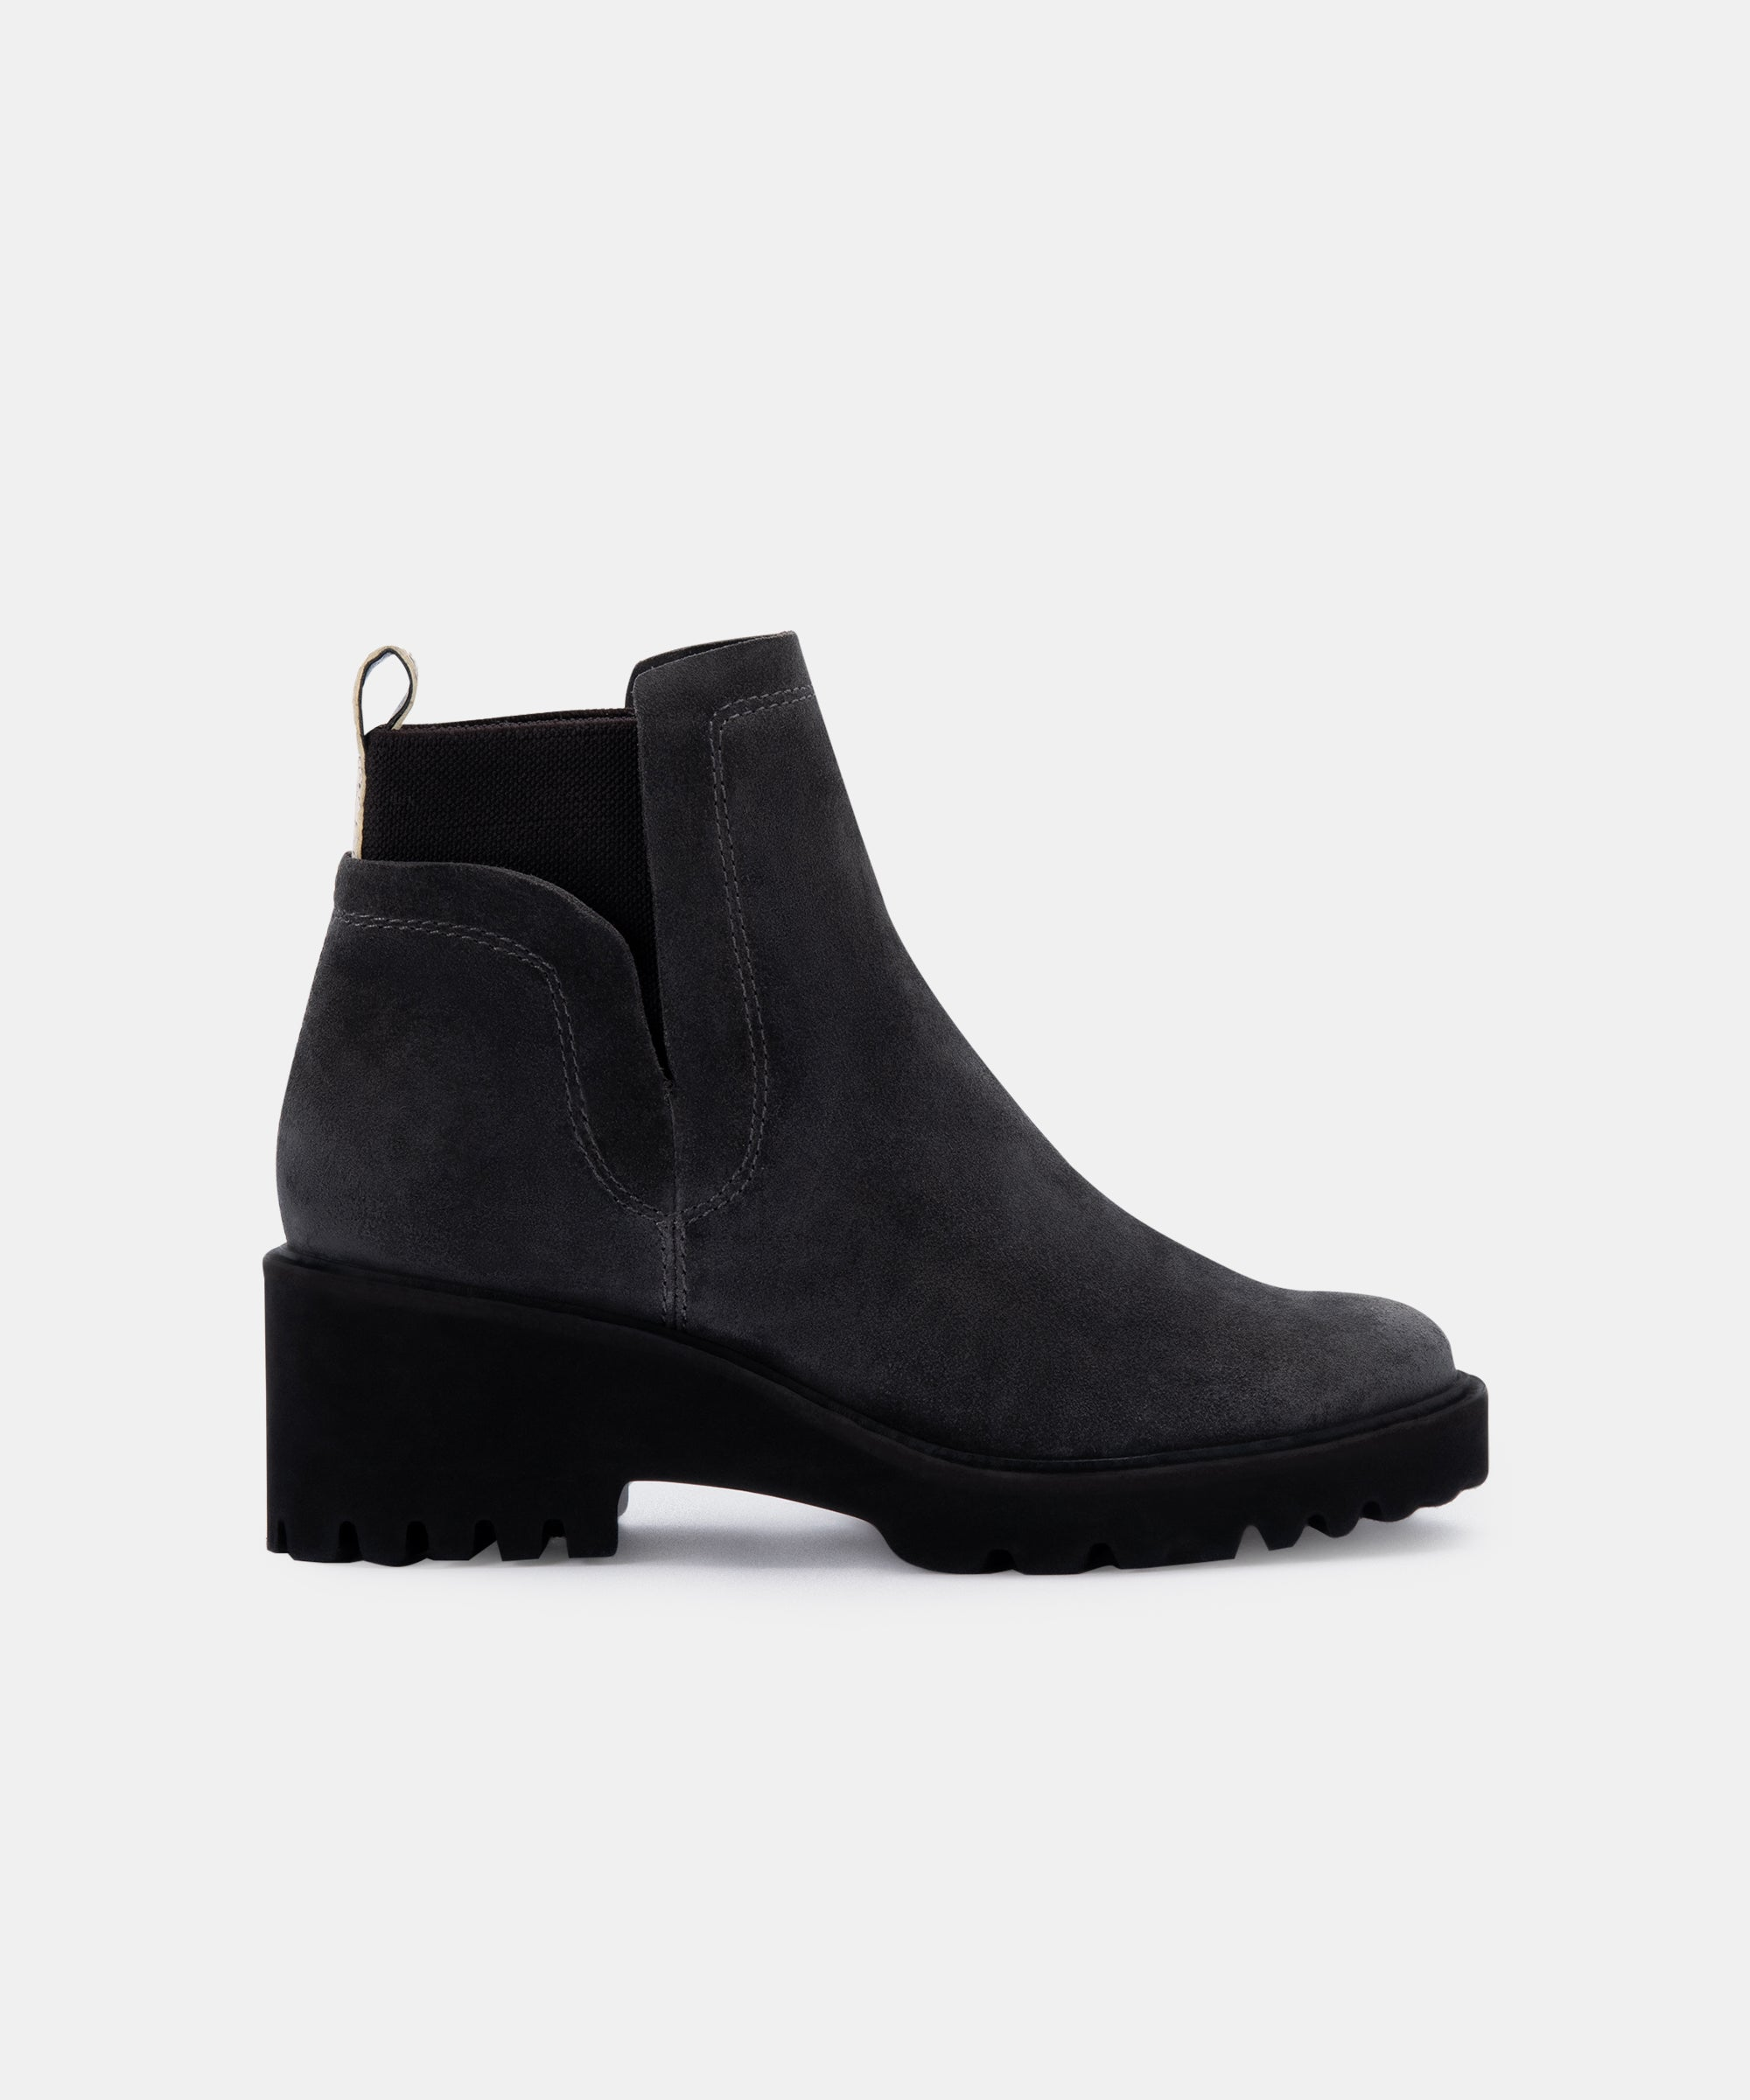 HUEY BOOTIES IN ANTHRACITE